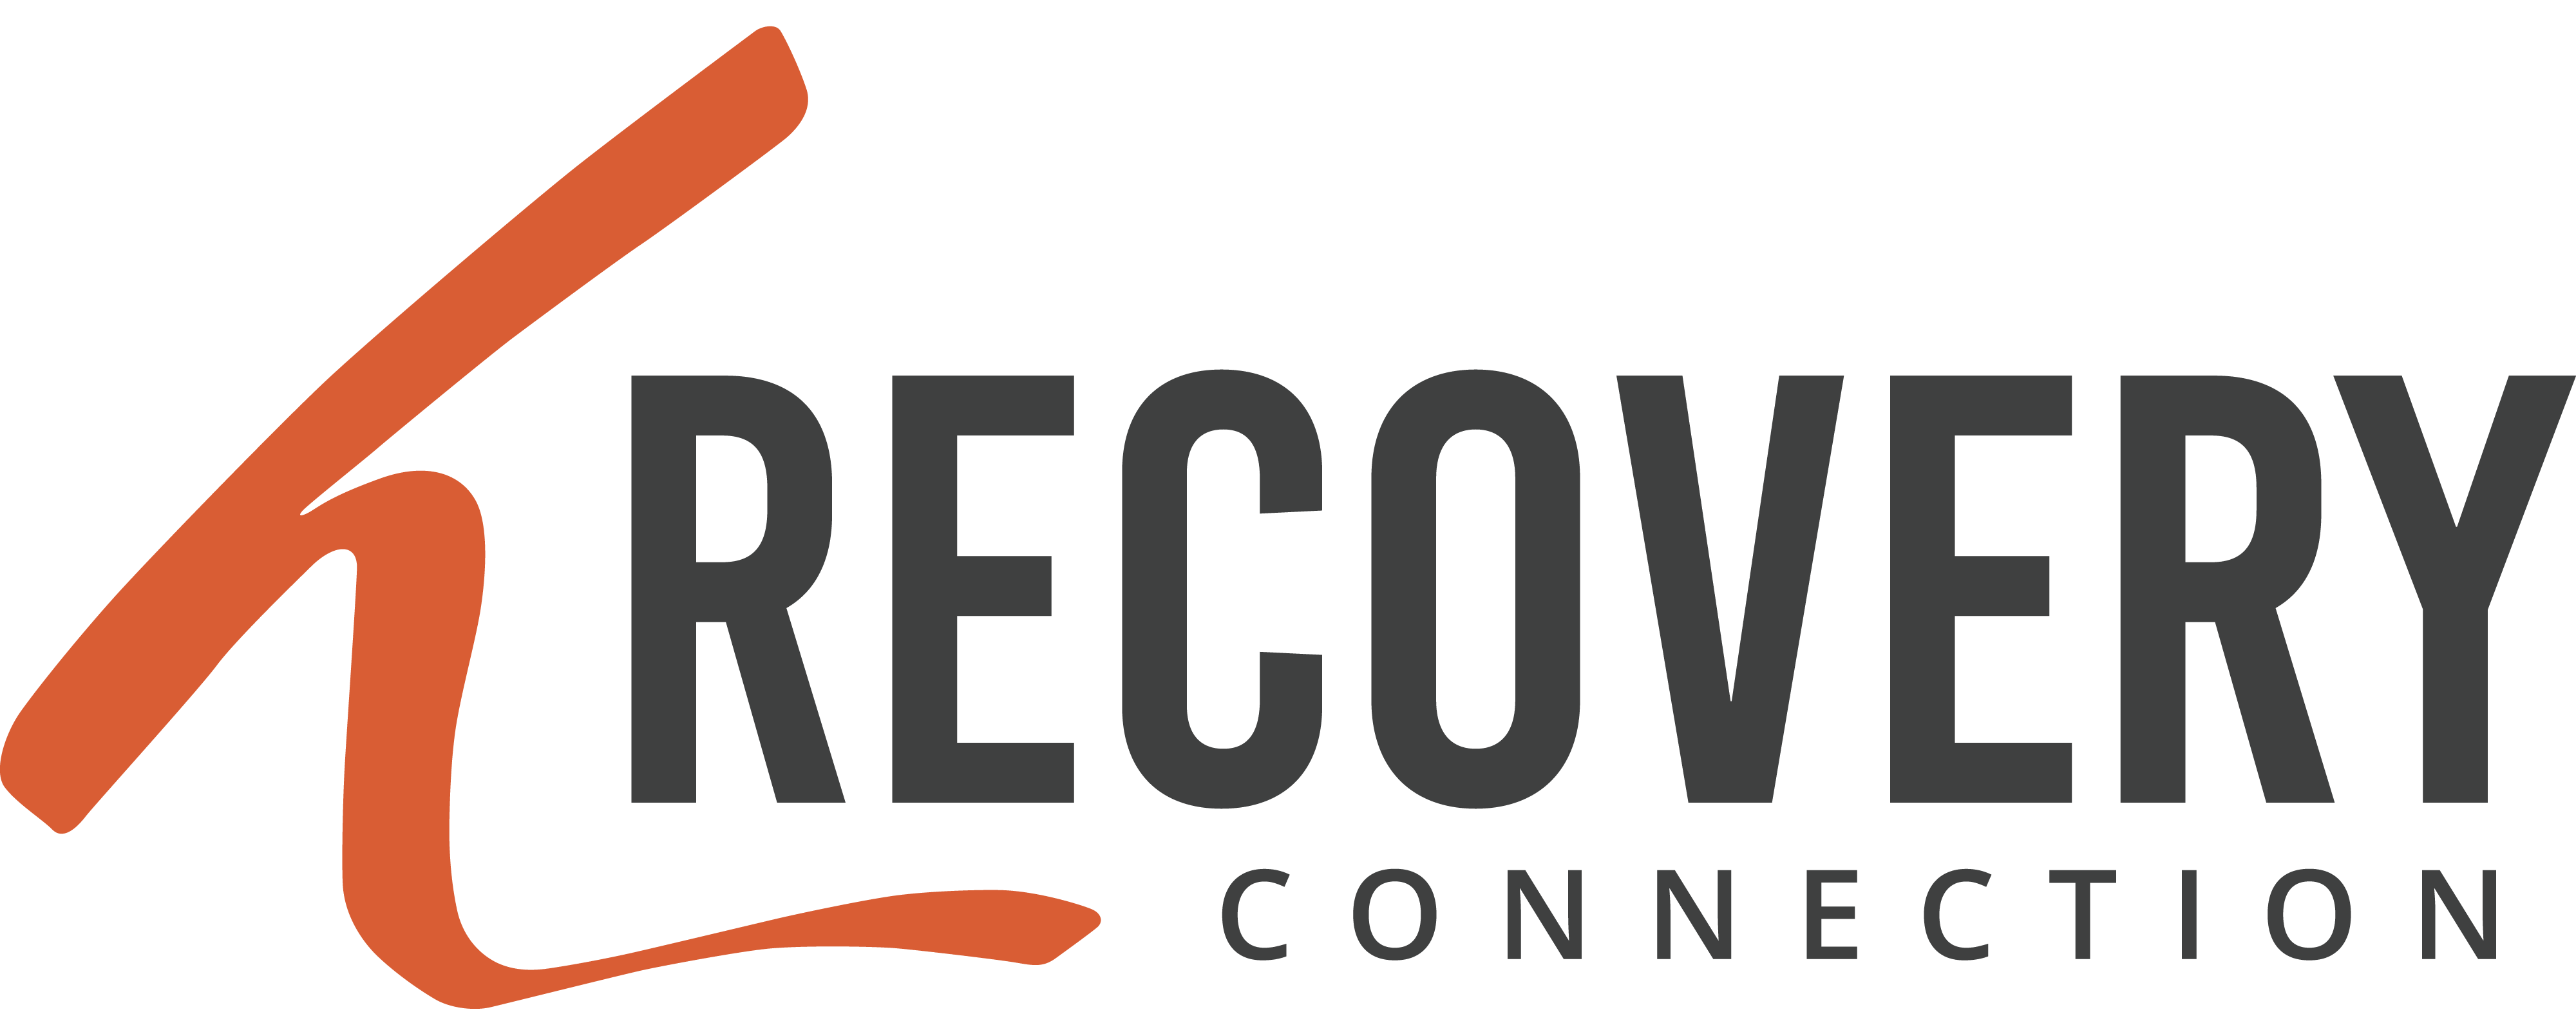 Harvest Recovery Connection Logo 01